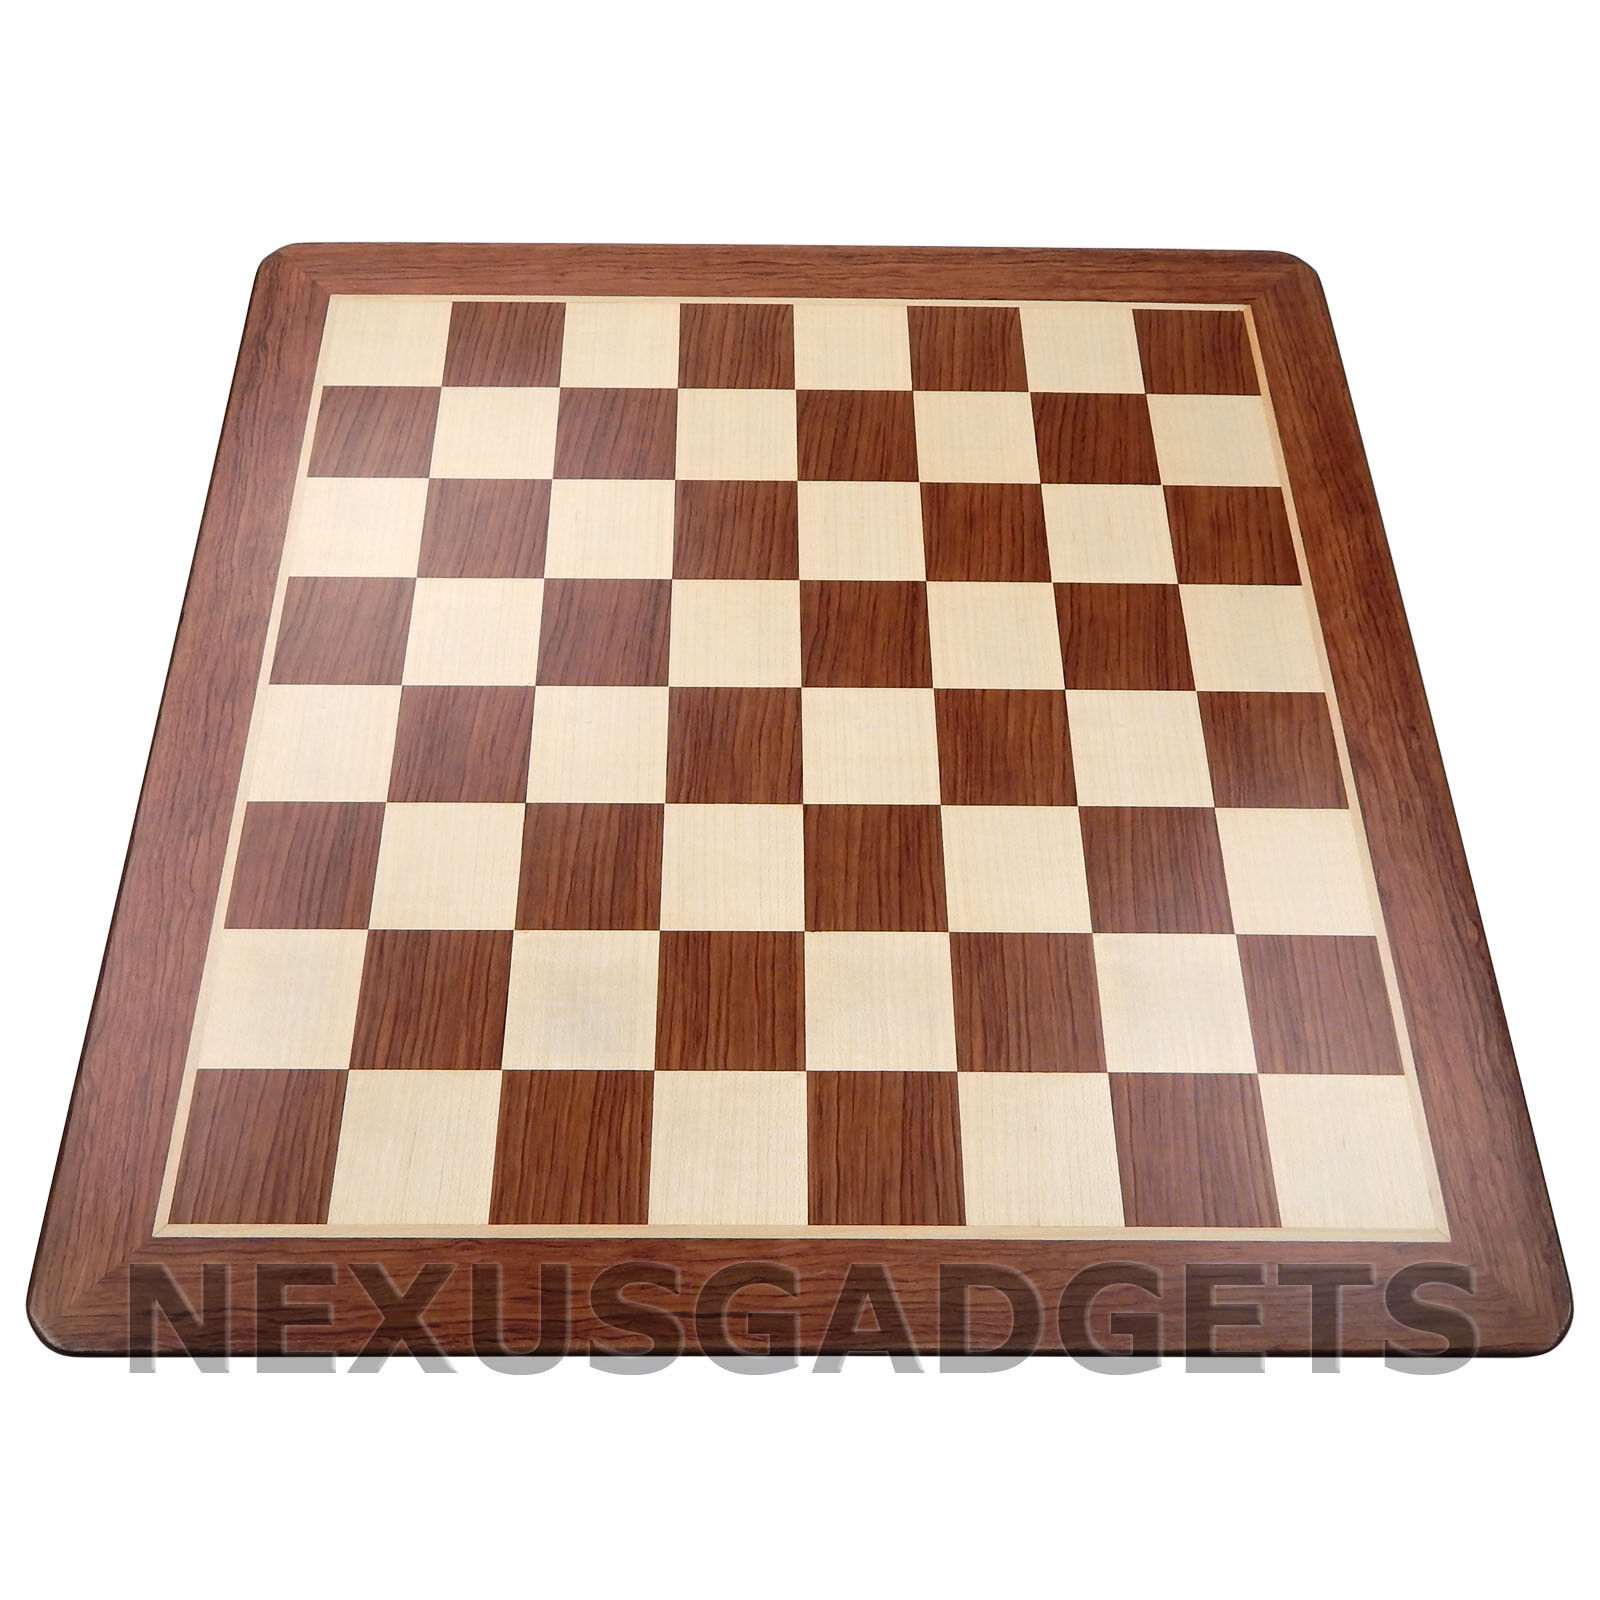 Tena Chess 19 INCH EXTRA LARGE Wood Game Set Flat Inlaid Wooden BOARD ONLY Nuovo